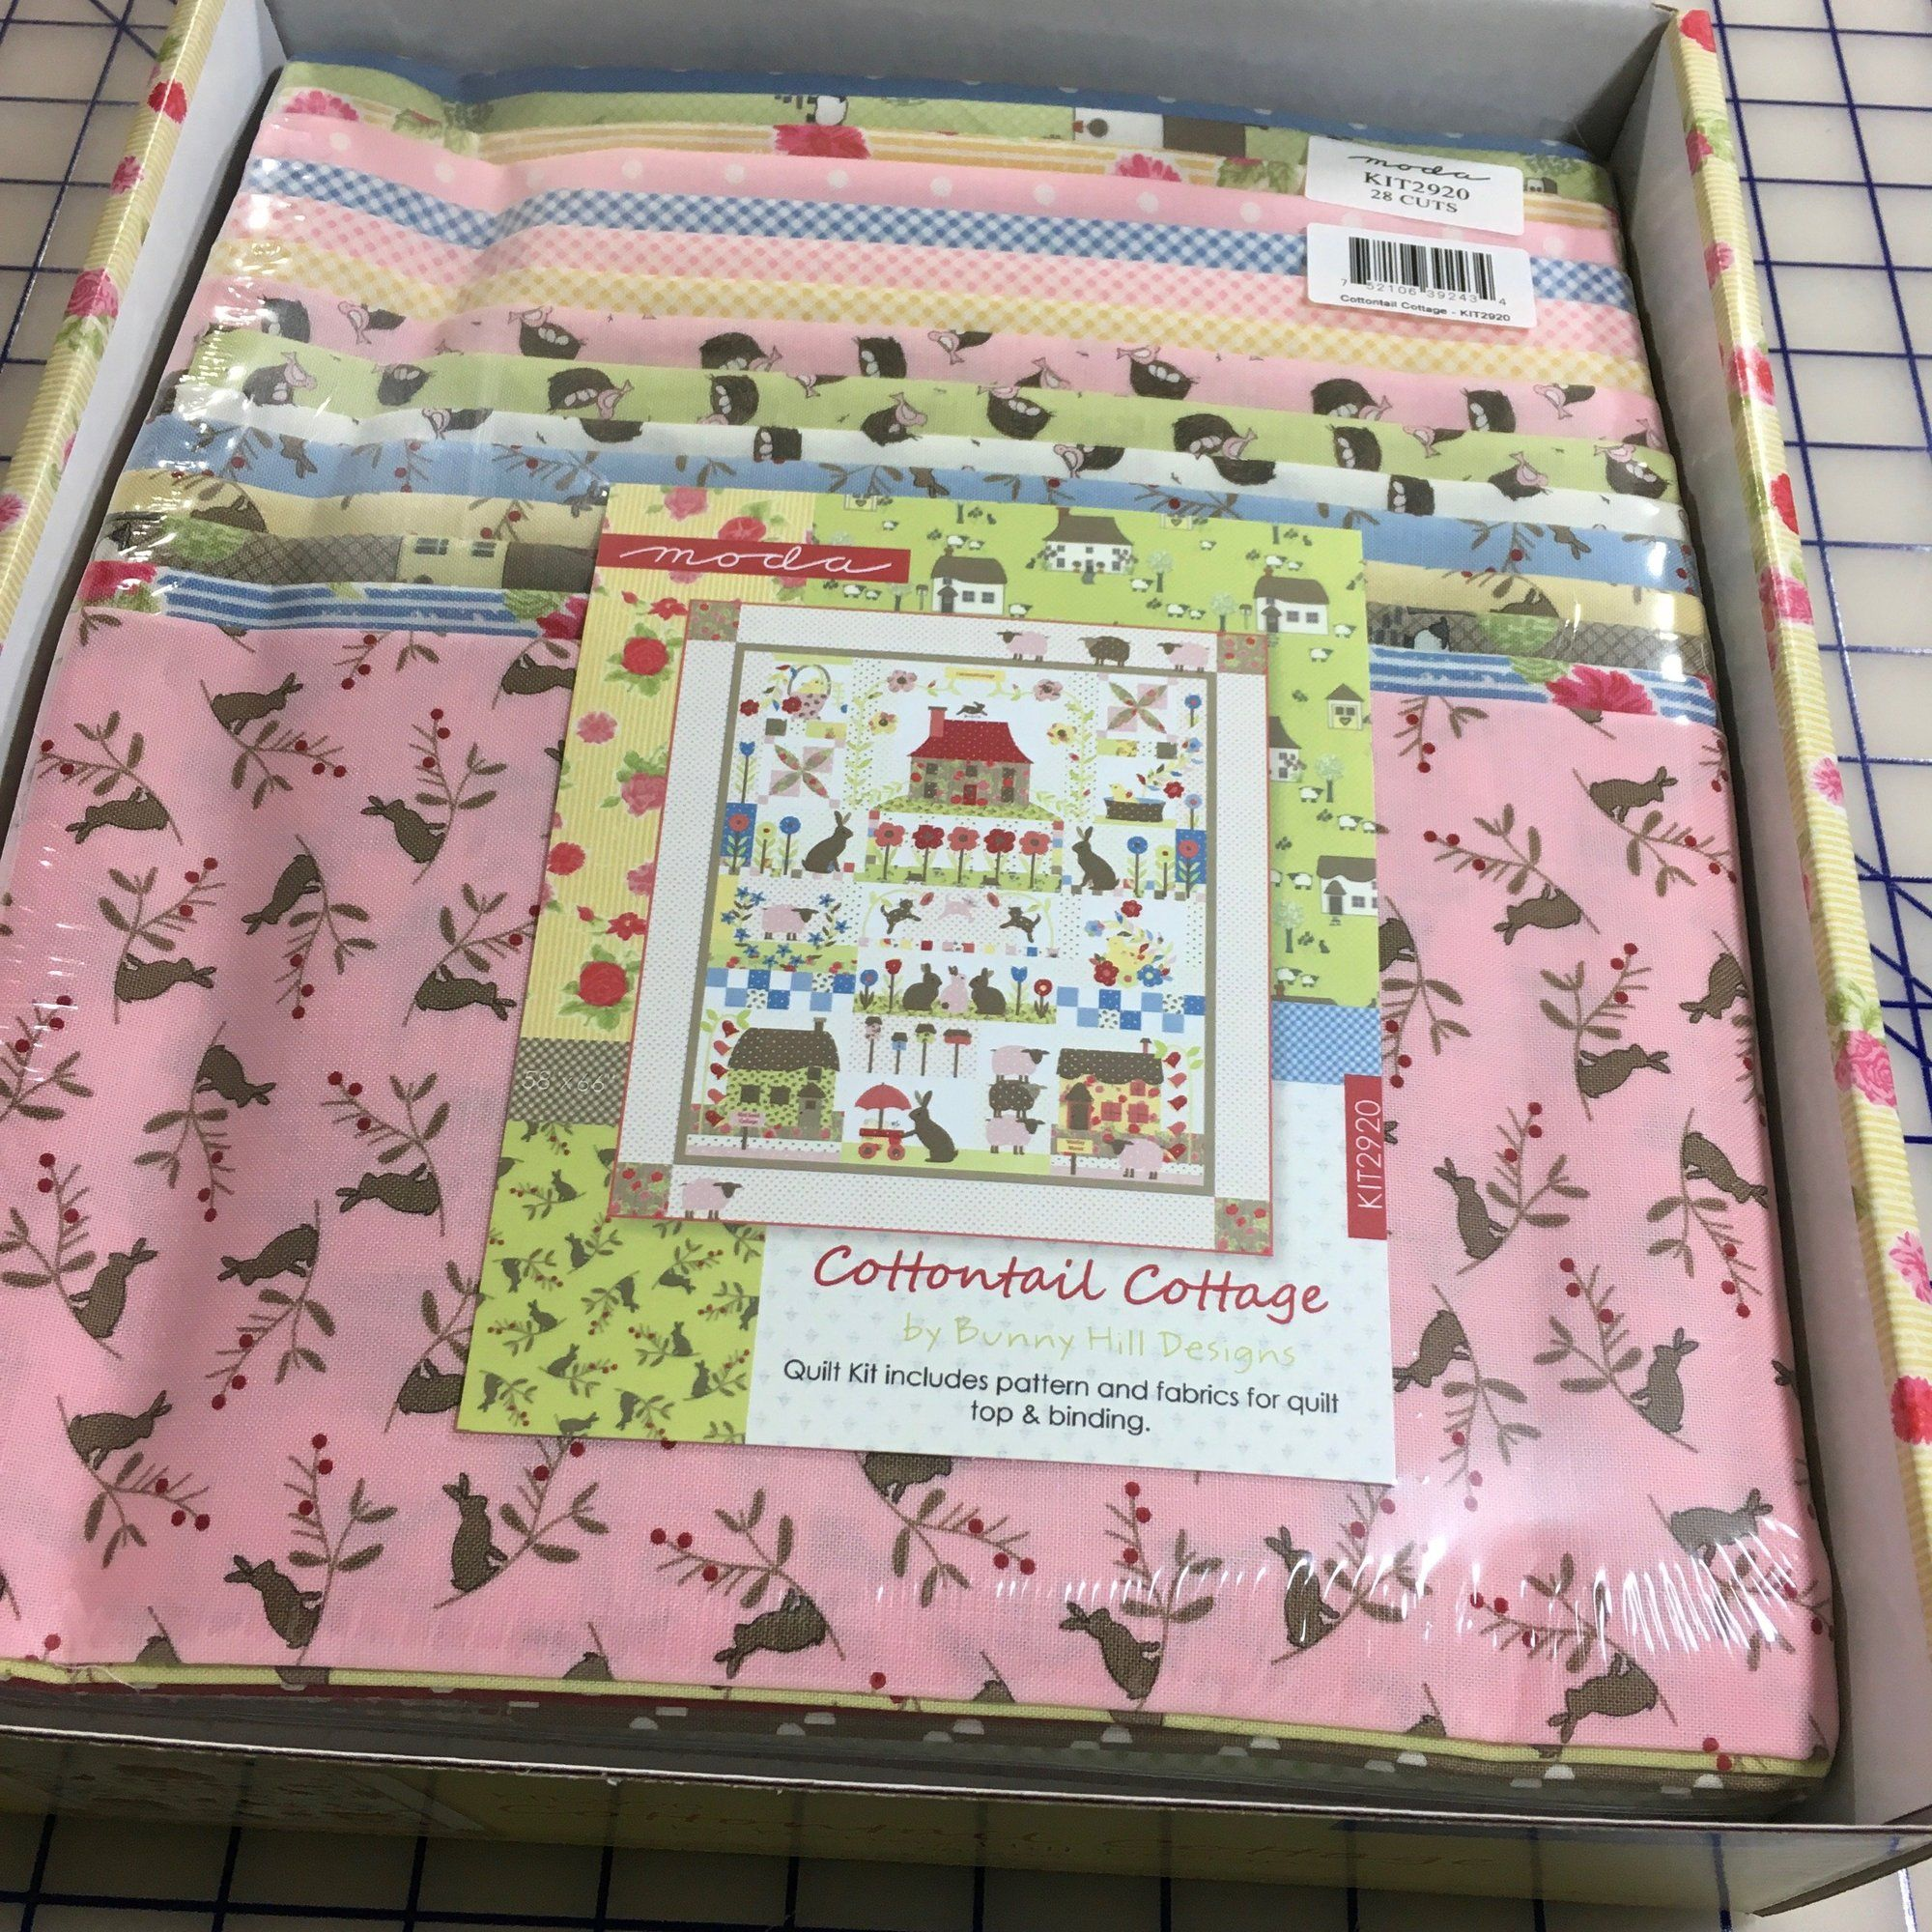 Cottontail Cottage Quilt Kit Bunny Hill Designs Moda Fabrics My Favorite Quilt Store My Favorite Quilt Patterns Quilt Kit Cottage Quilt Spring Quilts